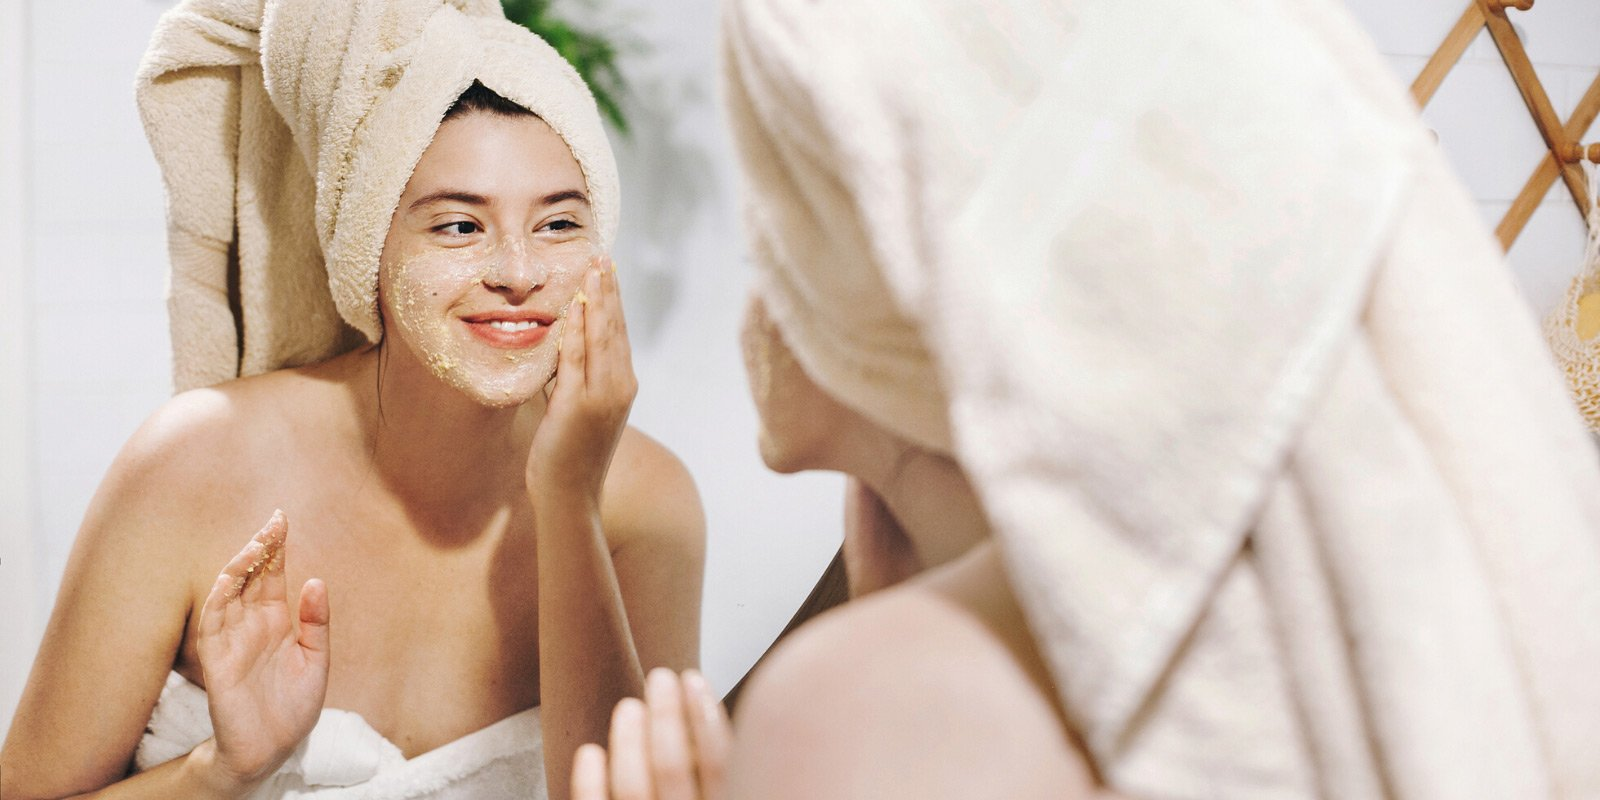 Top 9 Natural Exfoliators for Your Face and Body (Includes DIY Recipes)